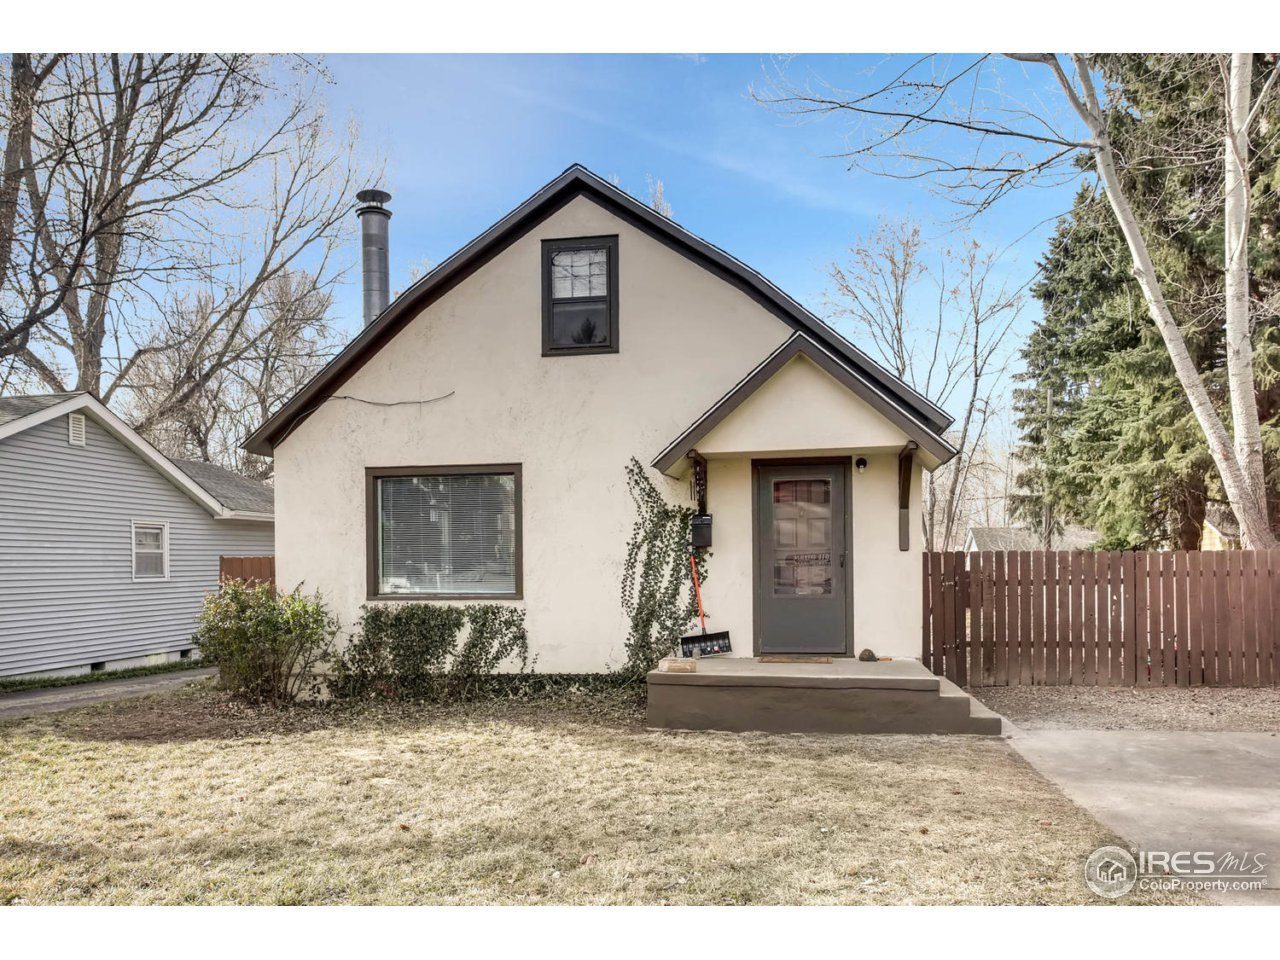 1623 Laporte Ave, Fort Collins CO 80521